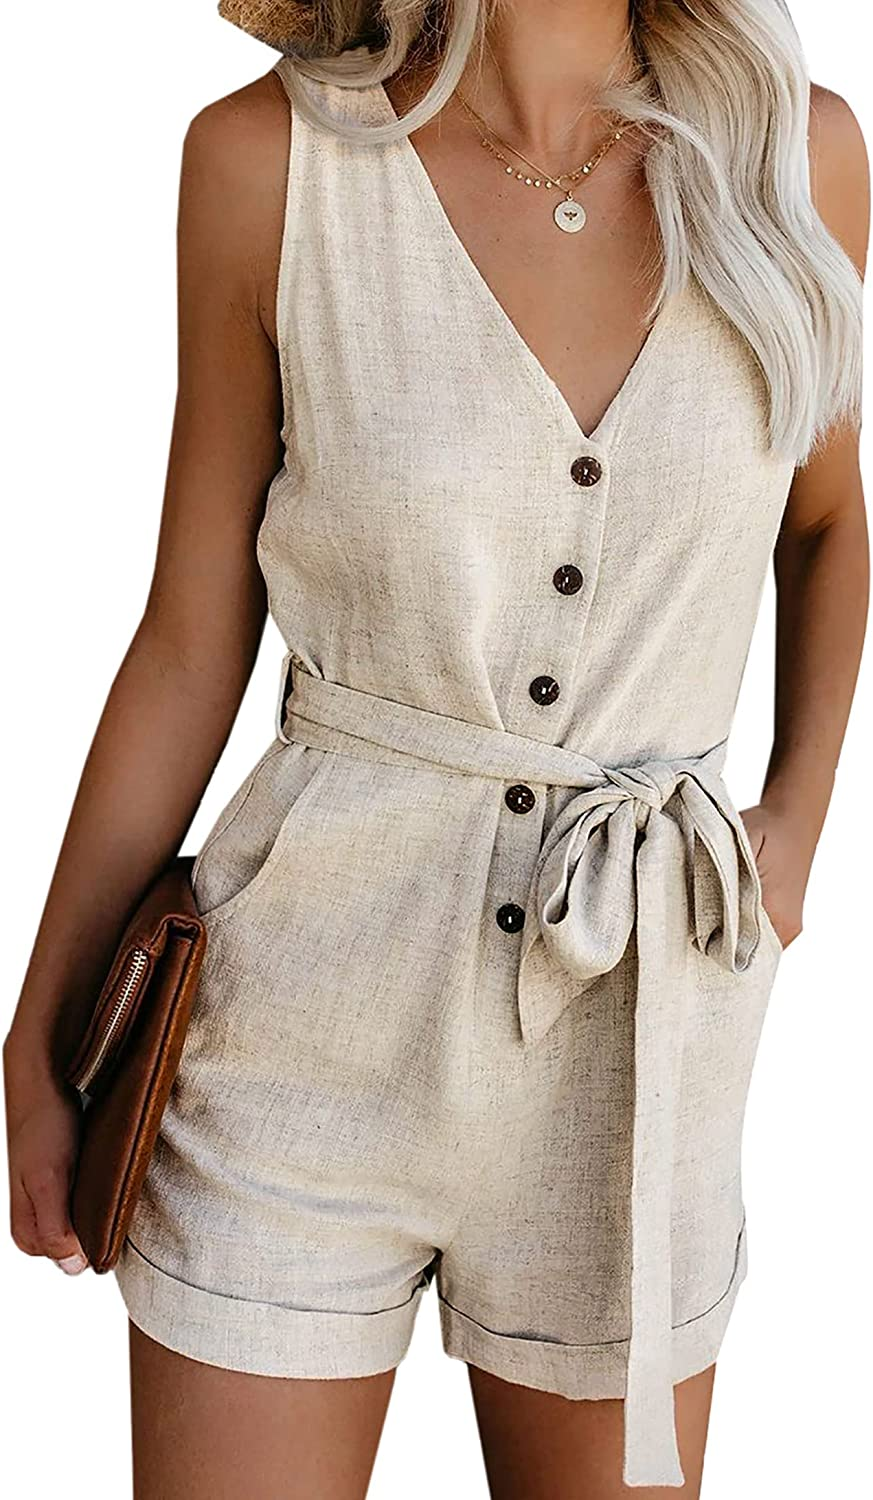 Actloe Popular popular Direct stock discount Rompers for Women Casual Summer Down Tank Button Romper C